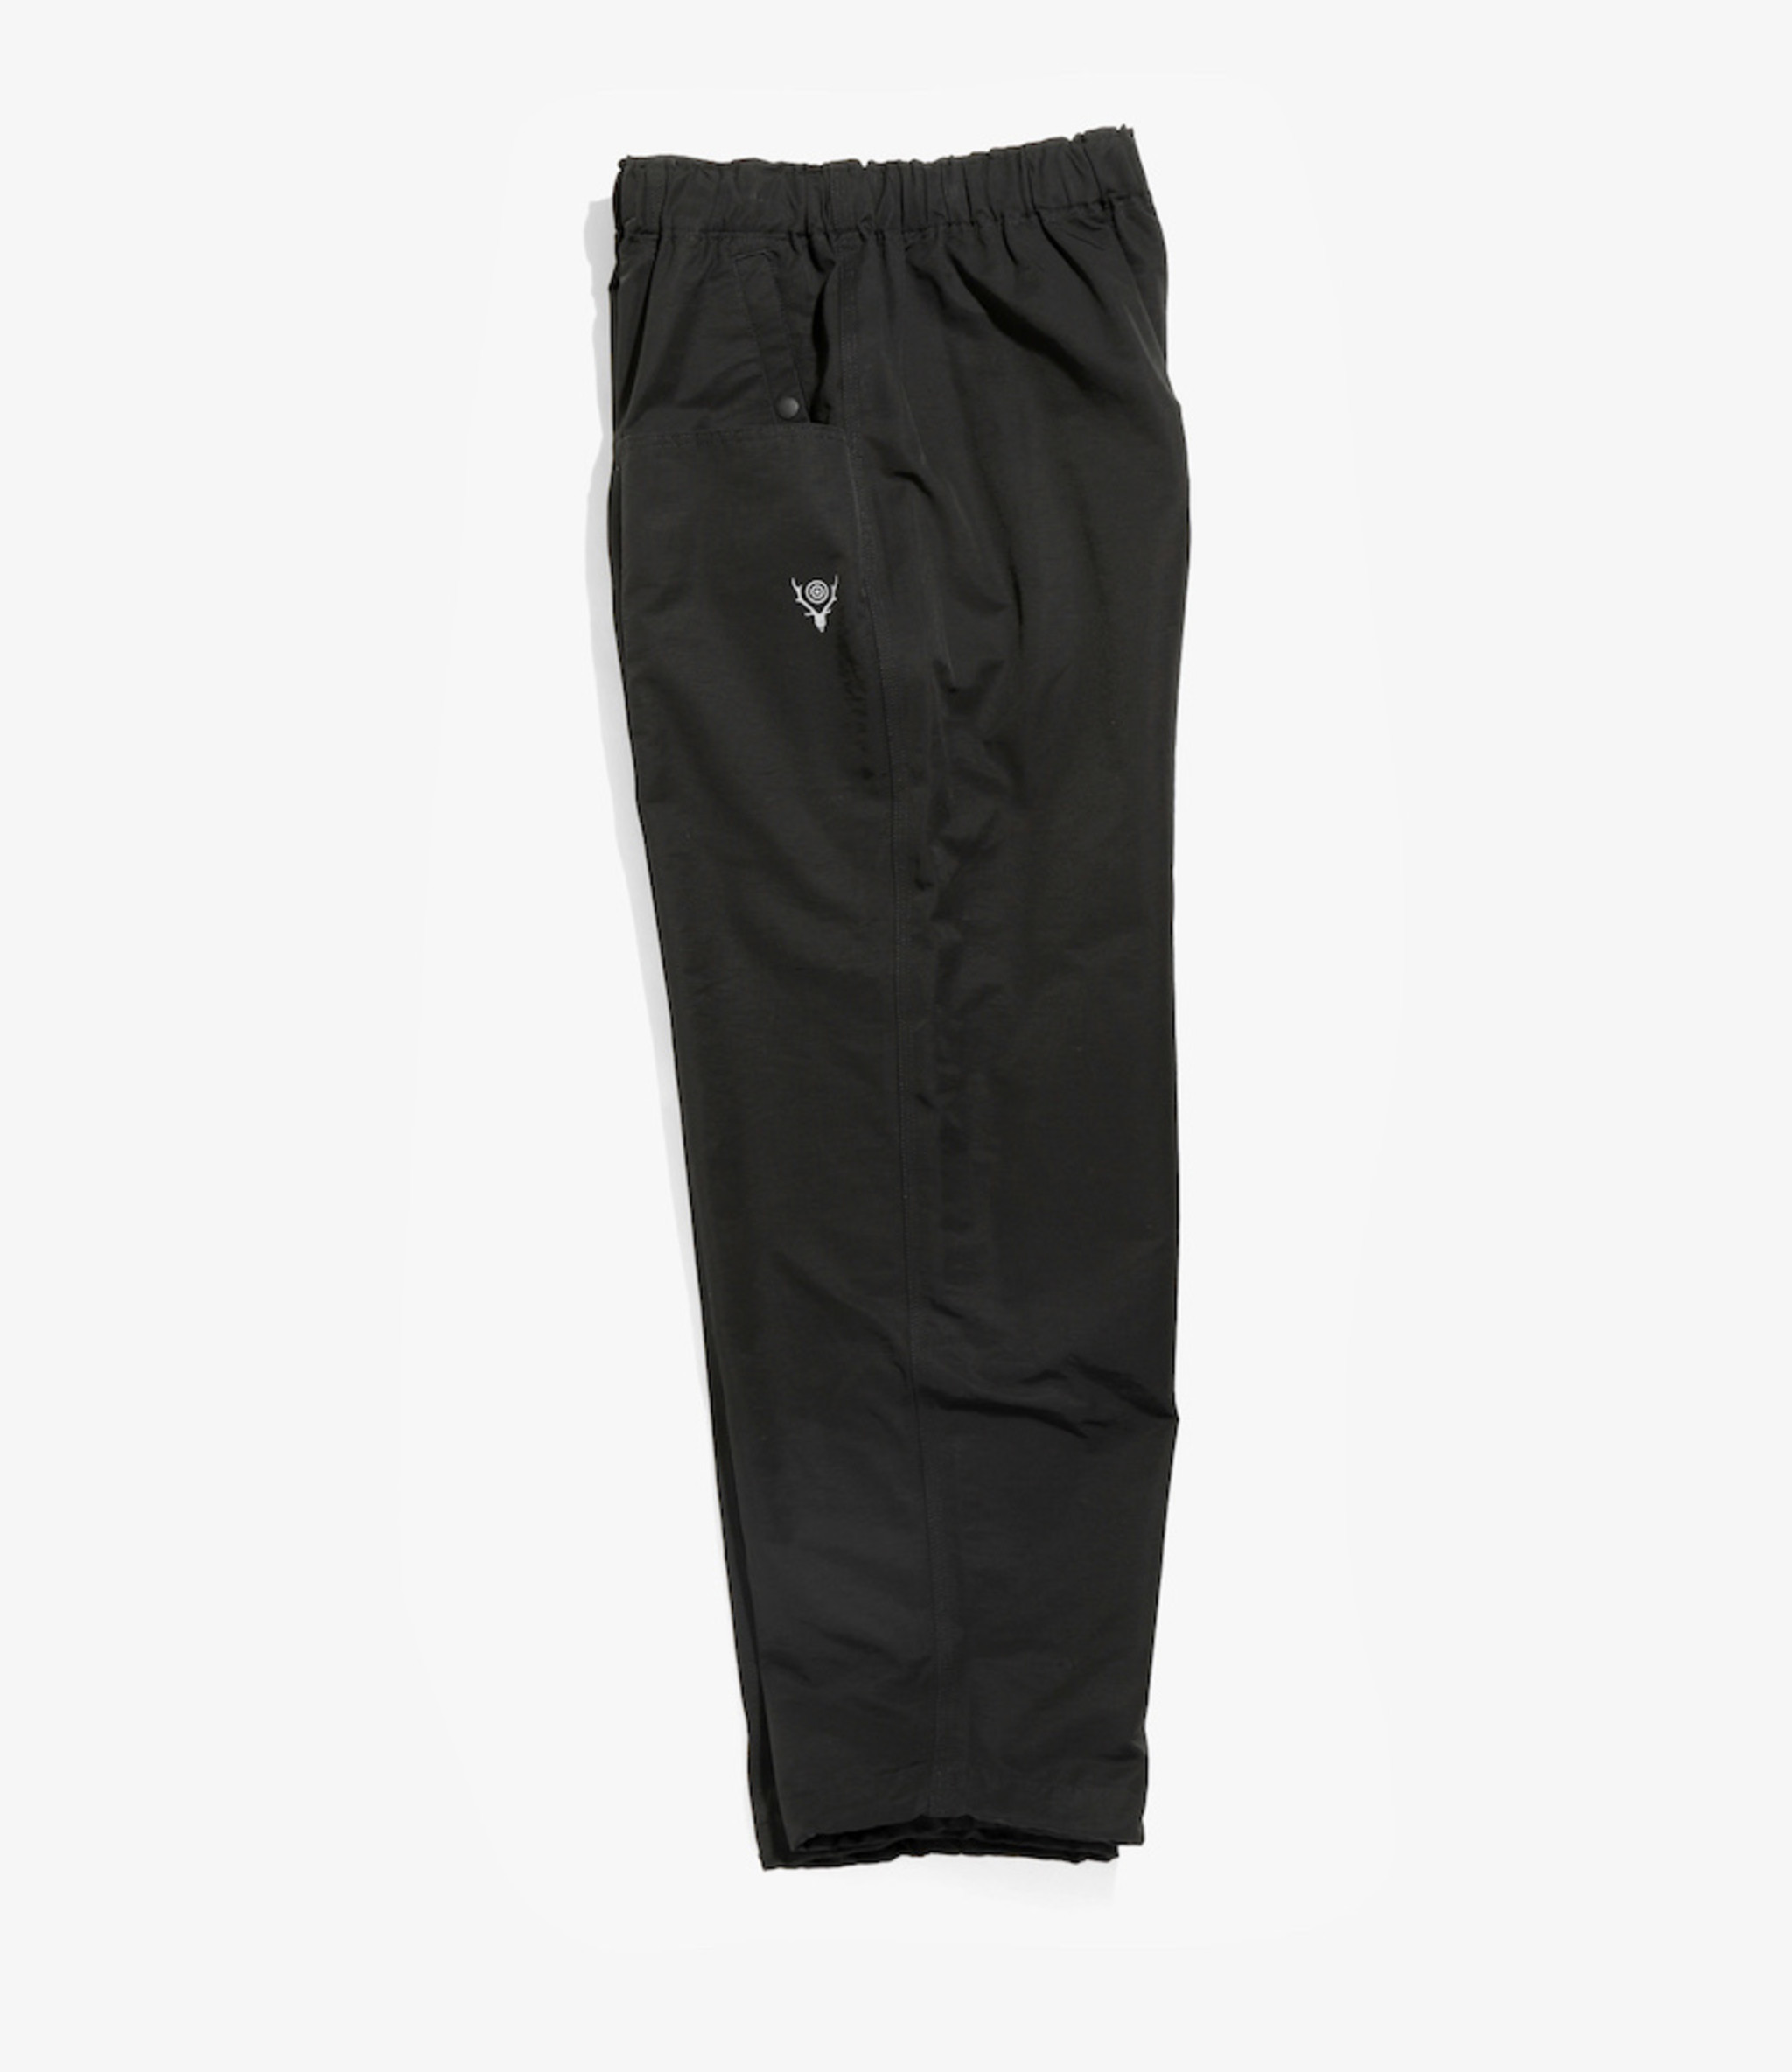 South2 West8 Belted Center Seam Pant - Cotton/Nylon Grosgrain - Black